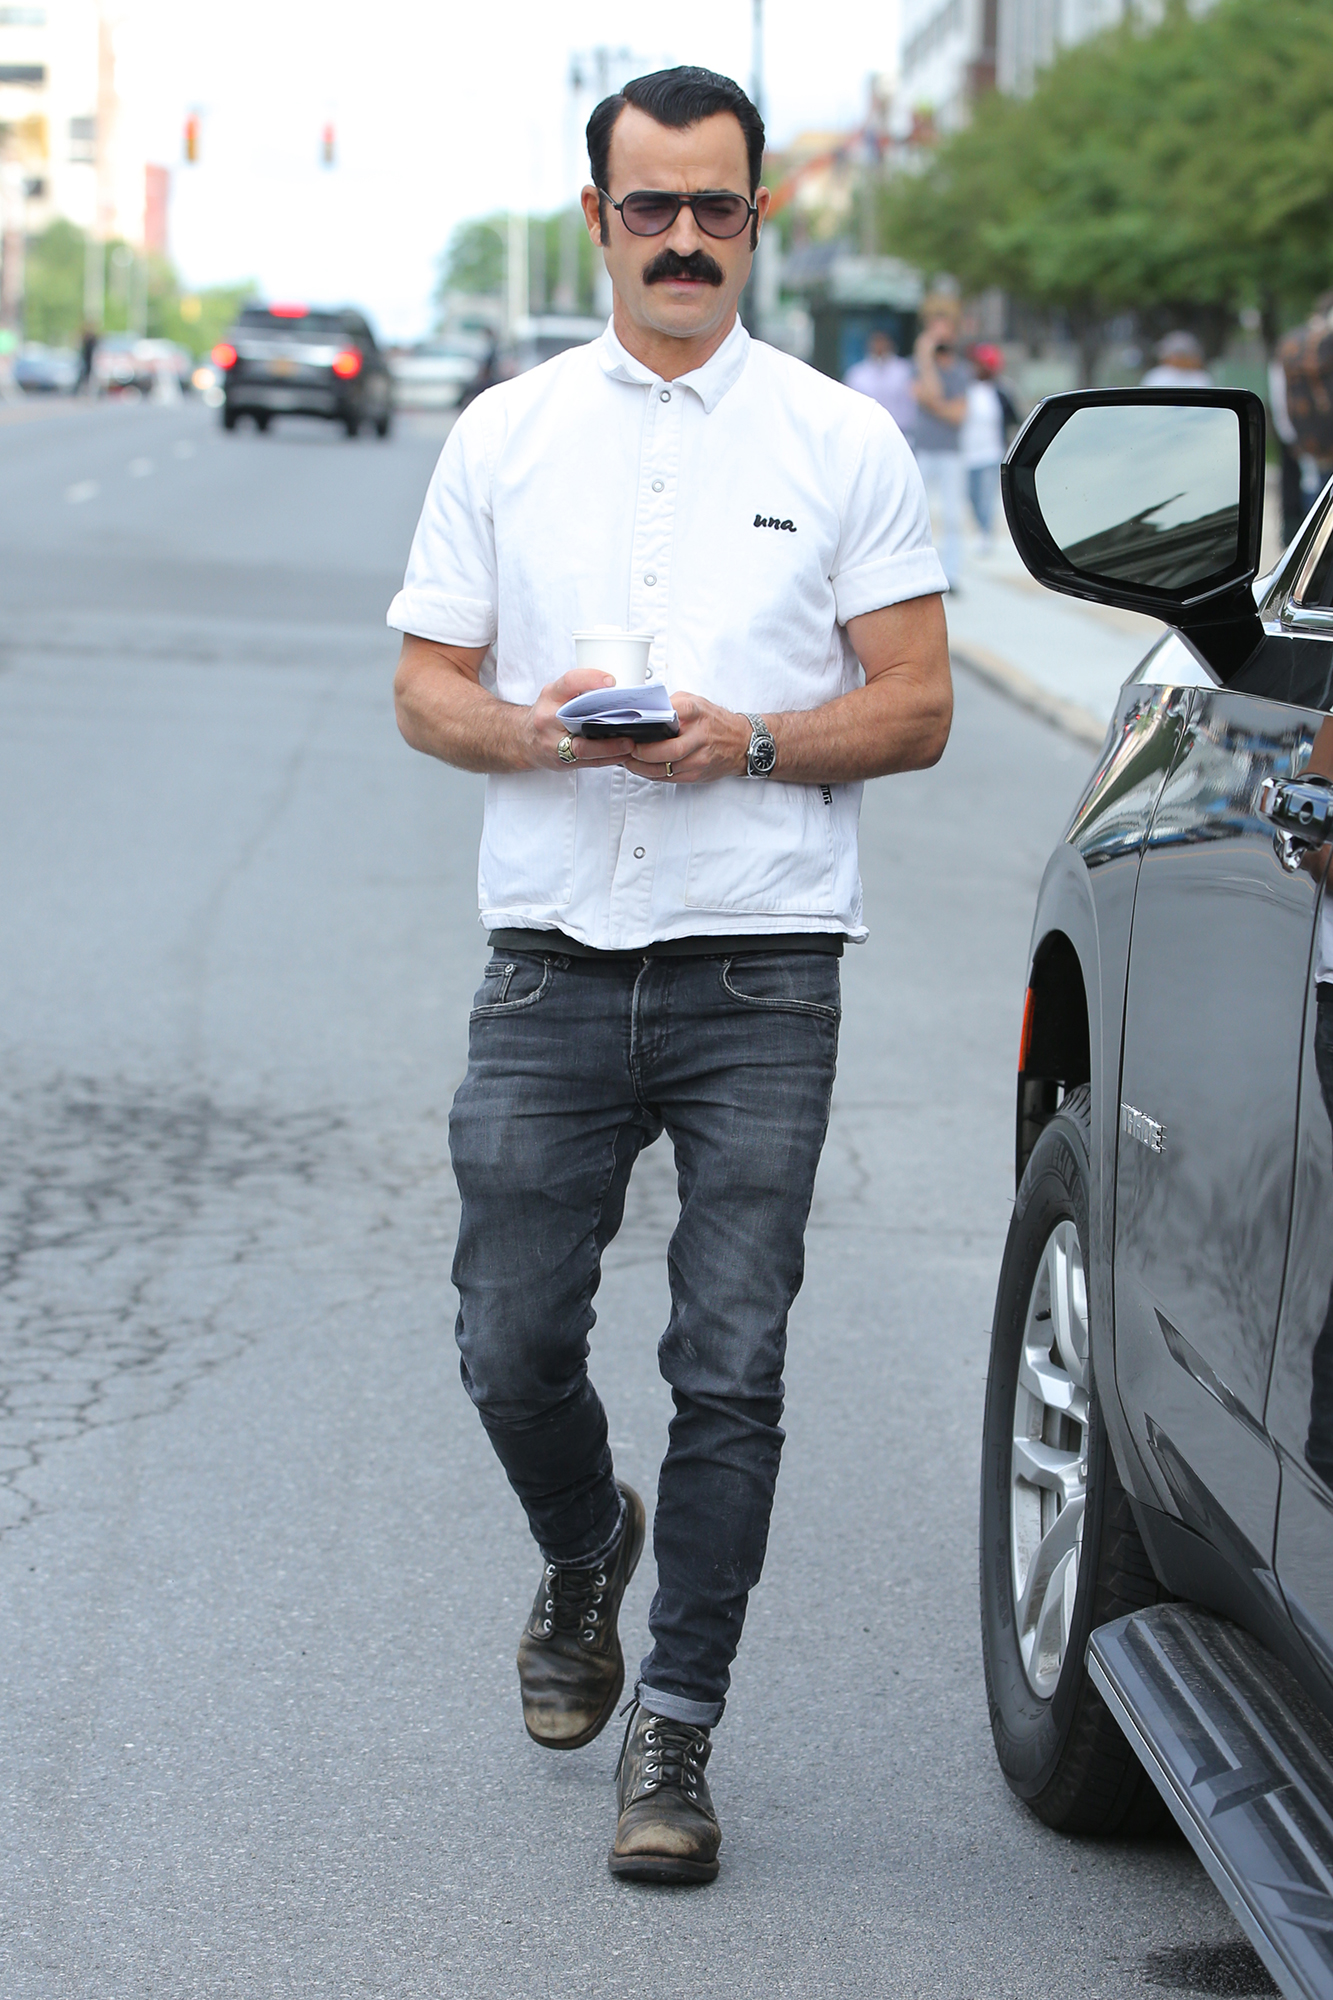 Justin Theroux arrives on set for rehearsals for 'The White House Plumbers' filming in Albany, New York